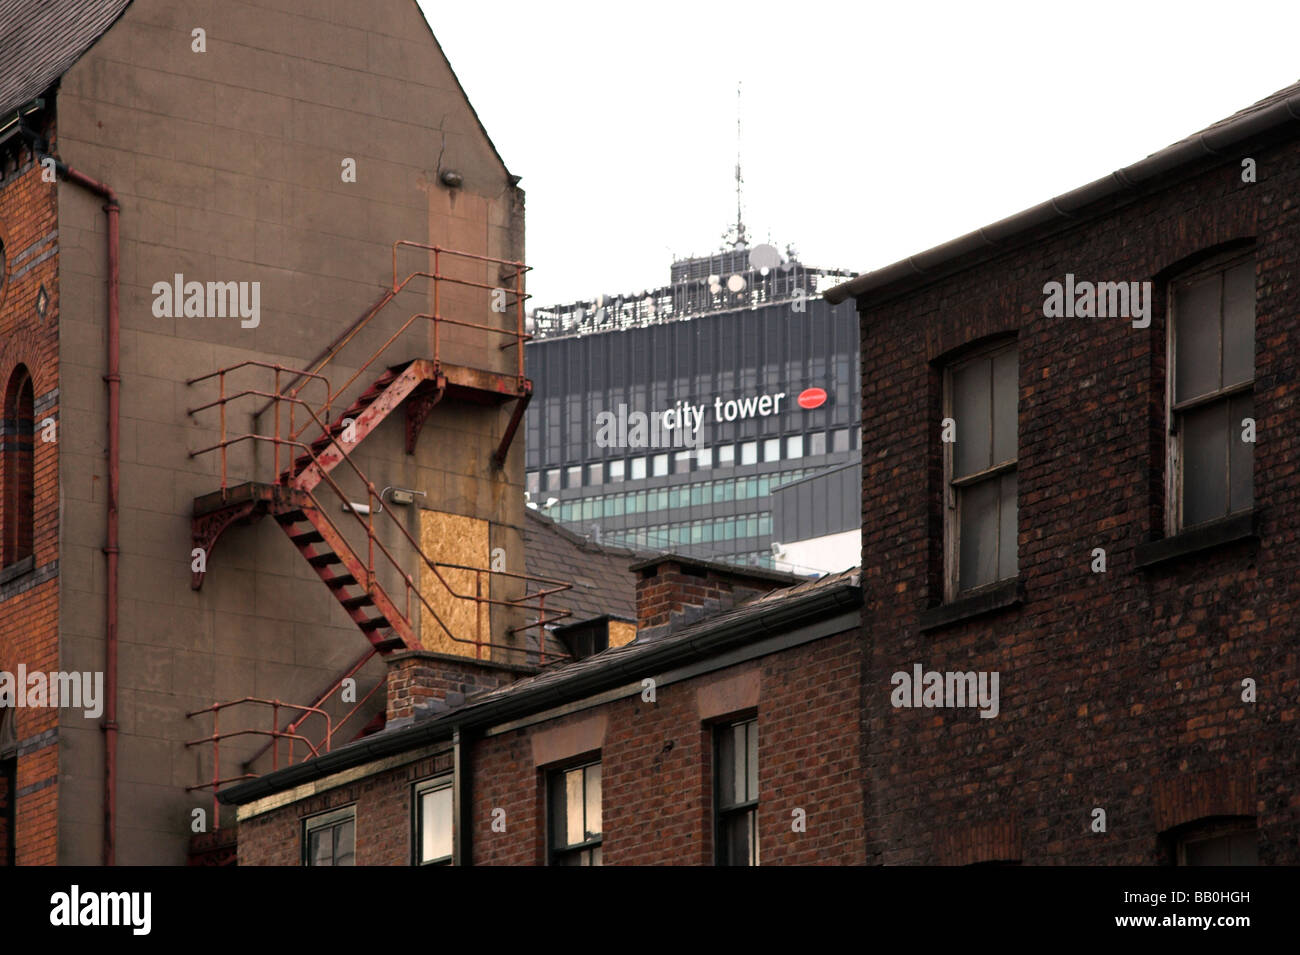 City Tower, former Sunley Tower, Picadilly Gardens, taken from the Northern Quarter, Manchester, UK - Stock Image